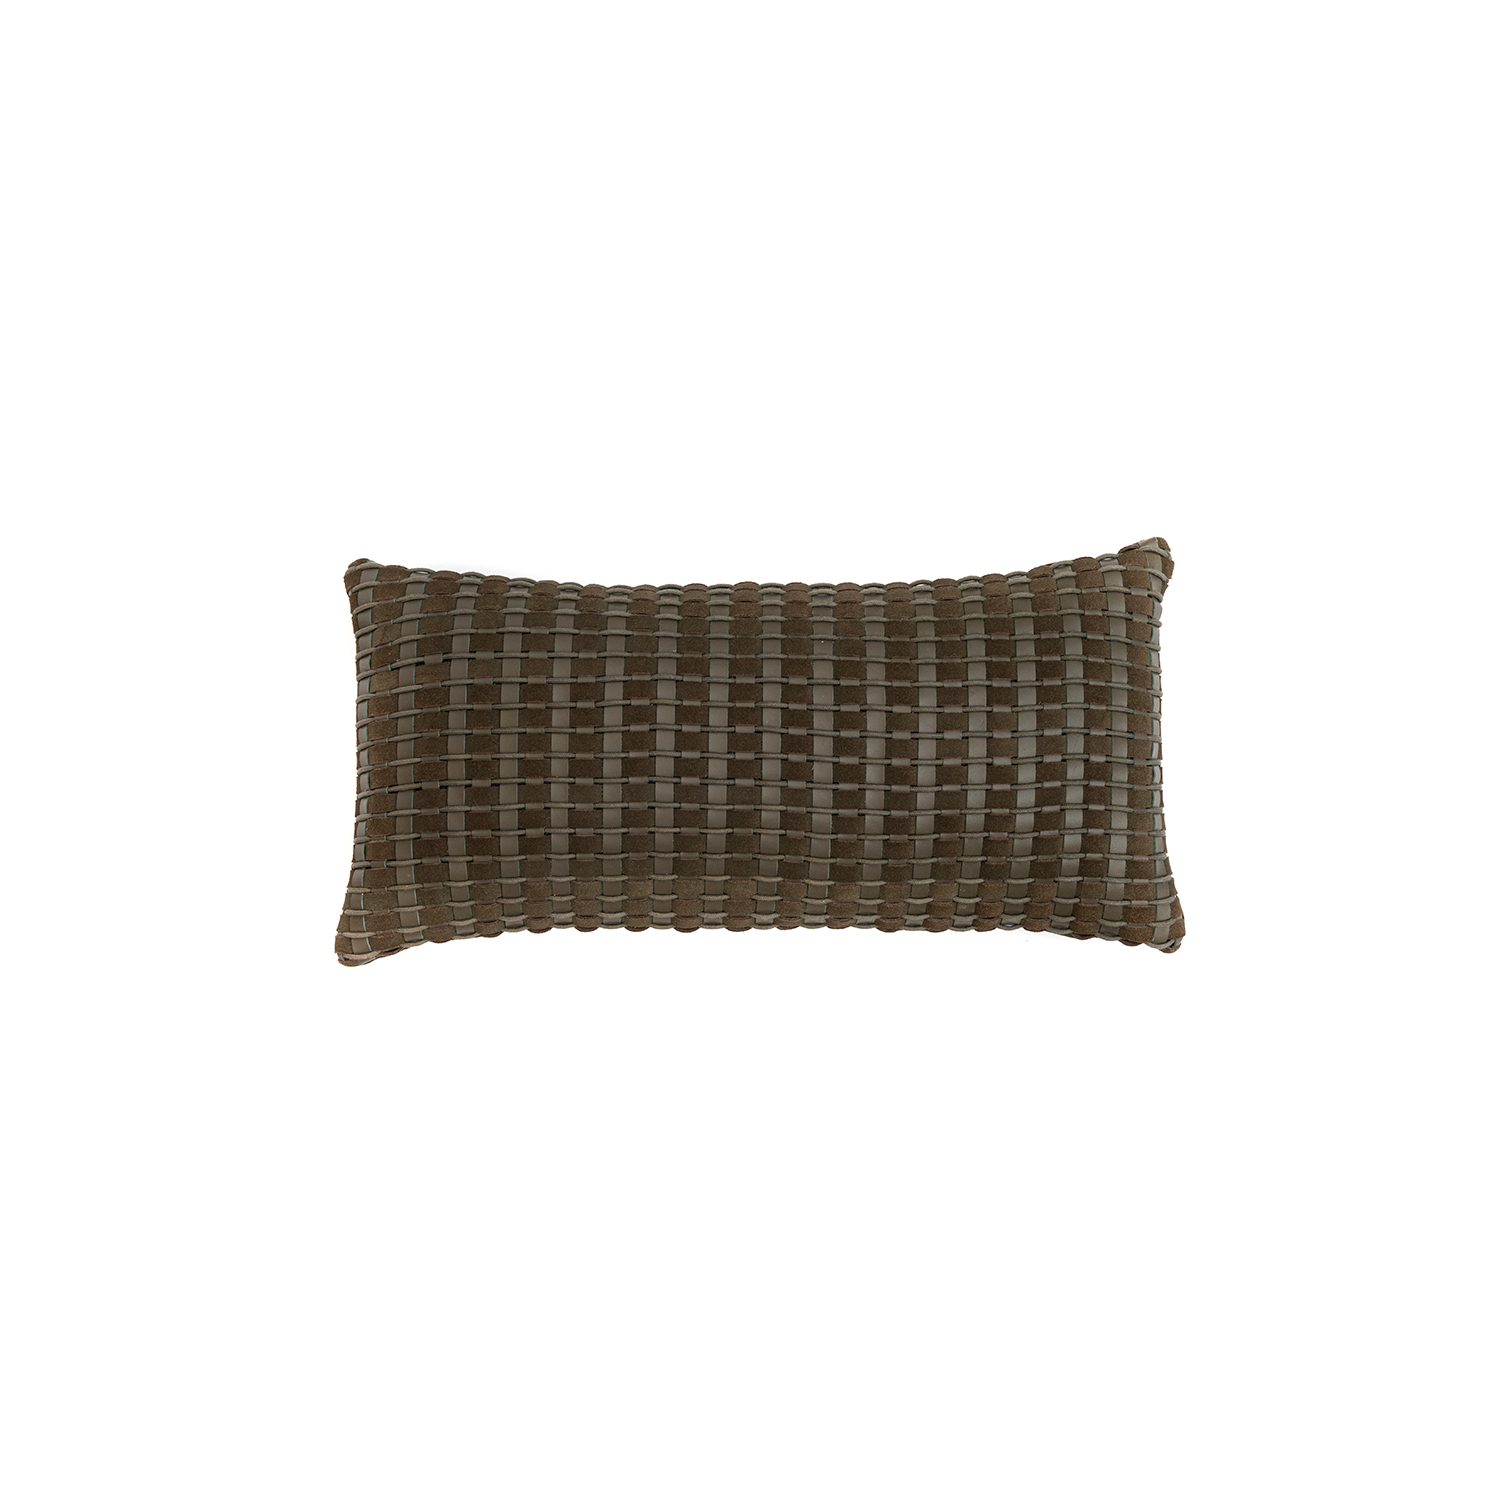 Camboja Woven Leather Cushion Small - The Camboja Woven Leather Cushion is designed to complement an ambient with a natural and sophisticated feeling. This cushion style is available in pleated leather or pleated suede leather. Elisa Atheniense woven handmade leather cushions are specially manufactured in Brazil using an exclusive treated leather that brings the soft feel touch to every single piece.   The front panel is handwoven in leather and the back panel is 100% Pes, made in Brazil.  The inner cushion is available in Hollow Fibre and European Duck Feathers, made in the UK.  Please enquire for more information and see colour chart for reference.   | Matter of Stuff